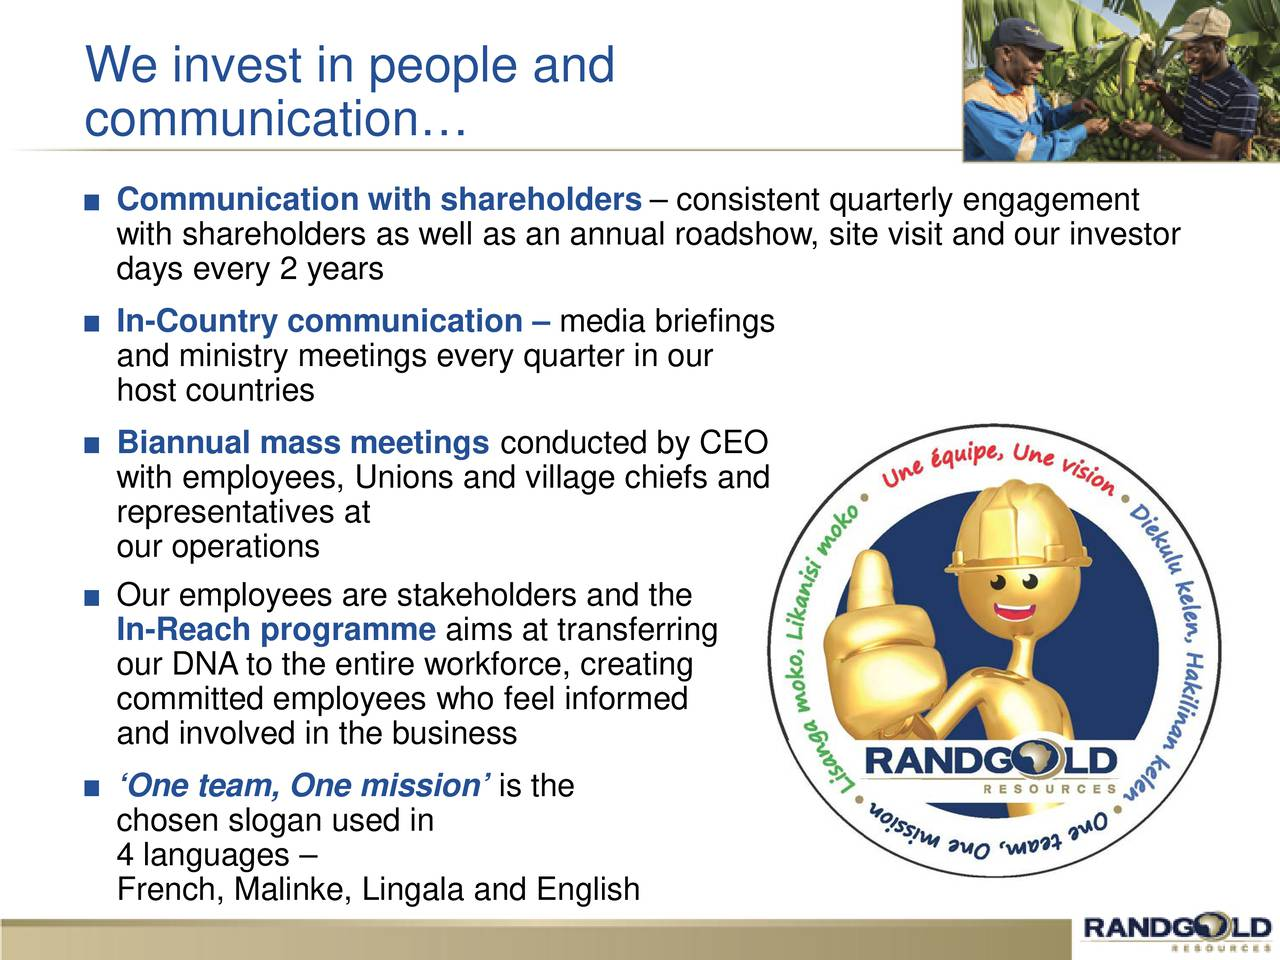 Randgold resources gold investor presentation slideshow randgold resources gold investor presentation slideshow randgold resources limited nasdaqgold seeking alpha buycottarizona